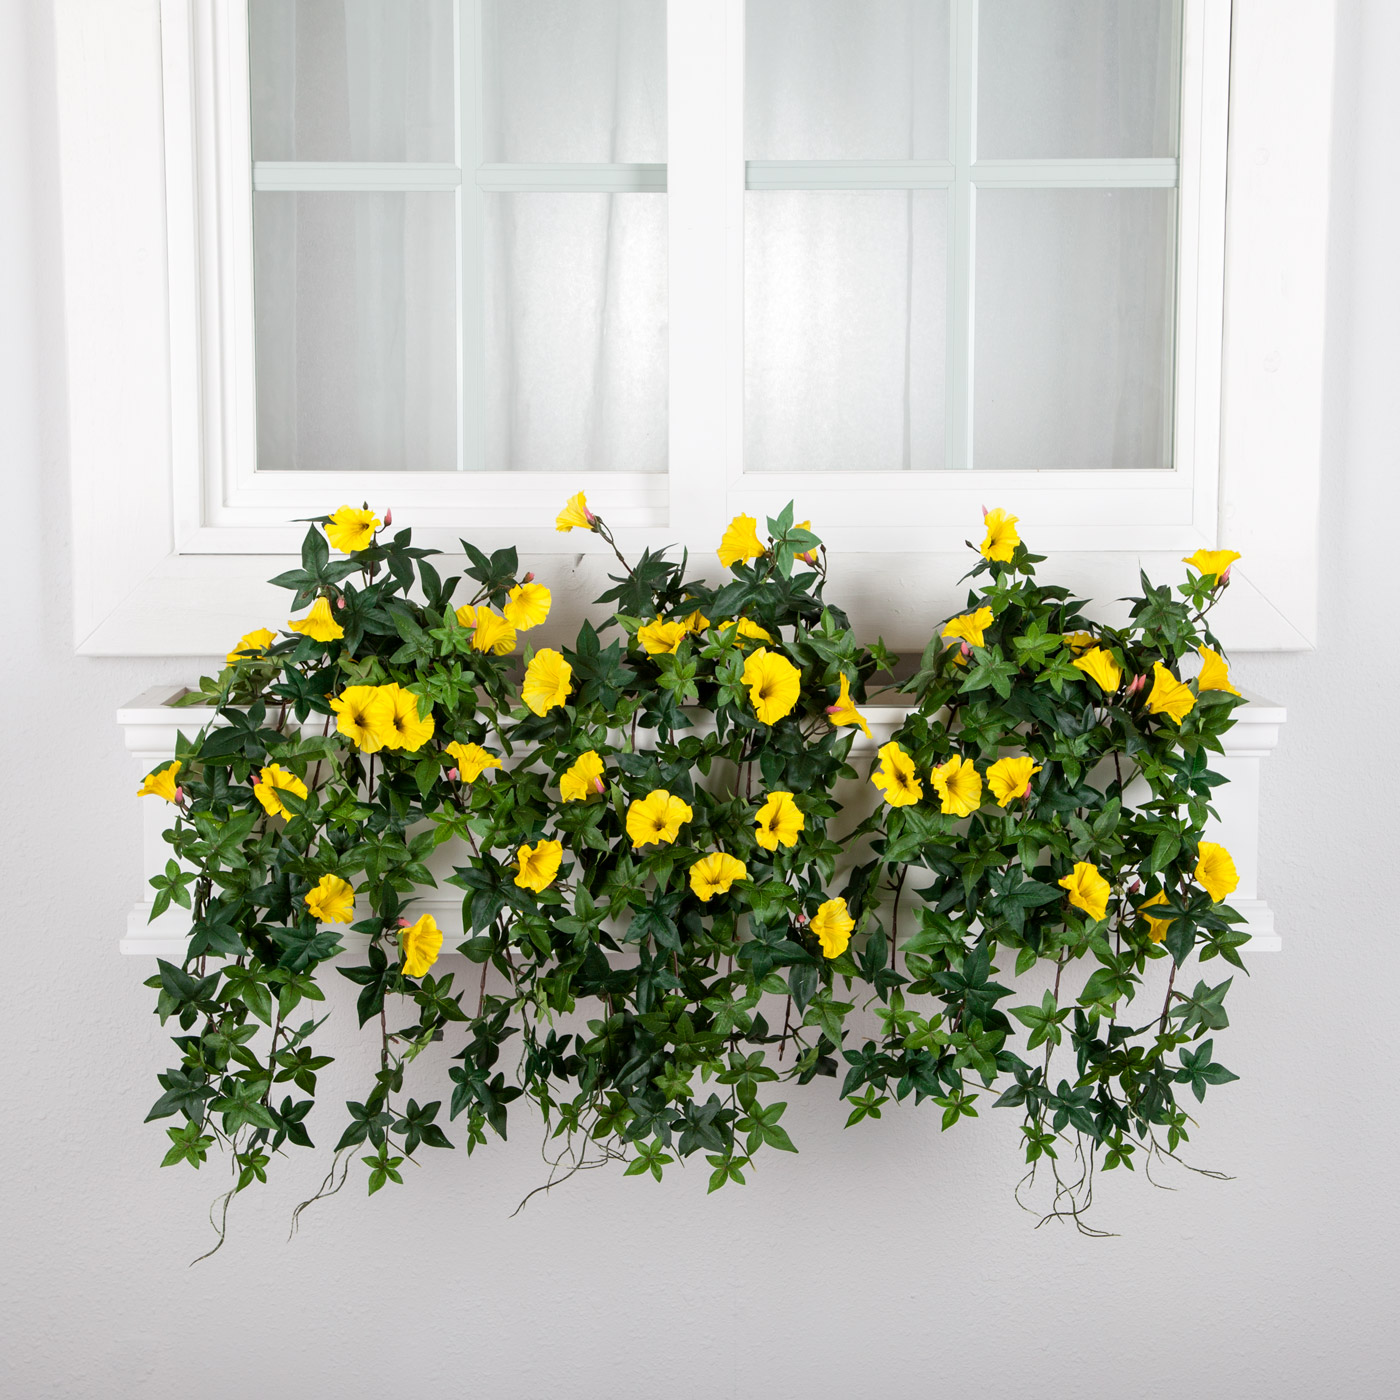 Artificial flowers for window boxes artificial flower arrangements artificial morning glories for window boxes izmirmasajfo